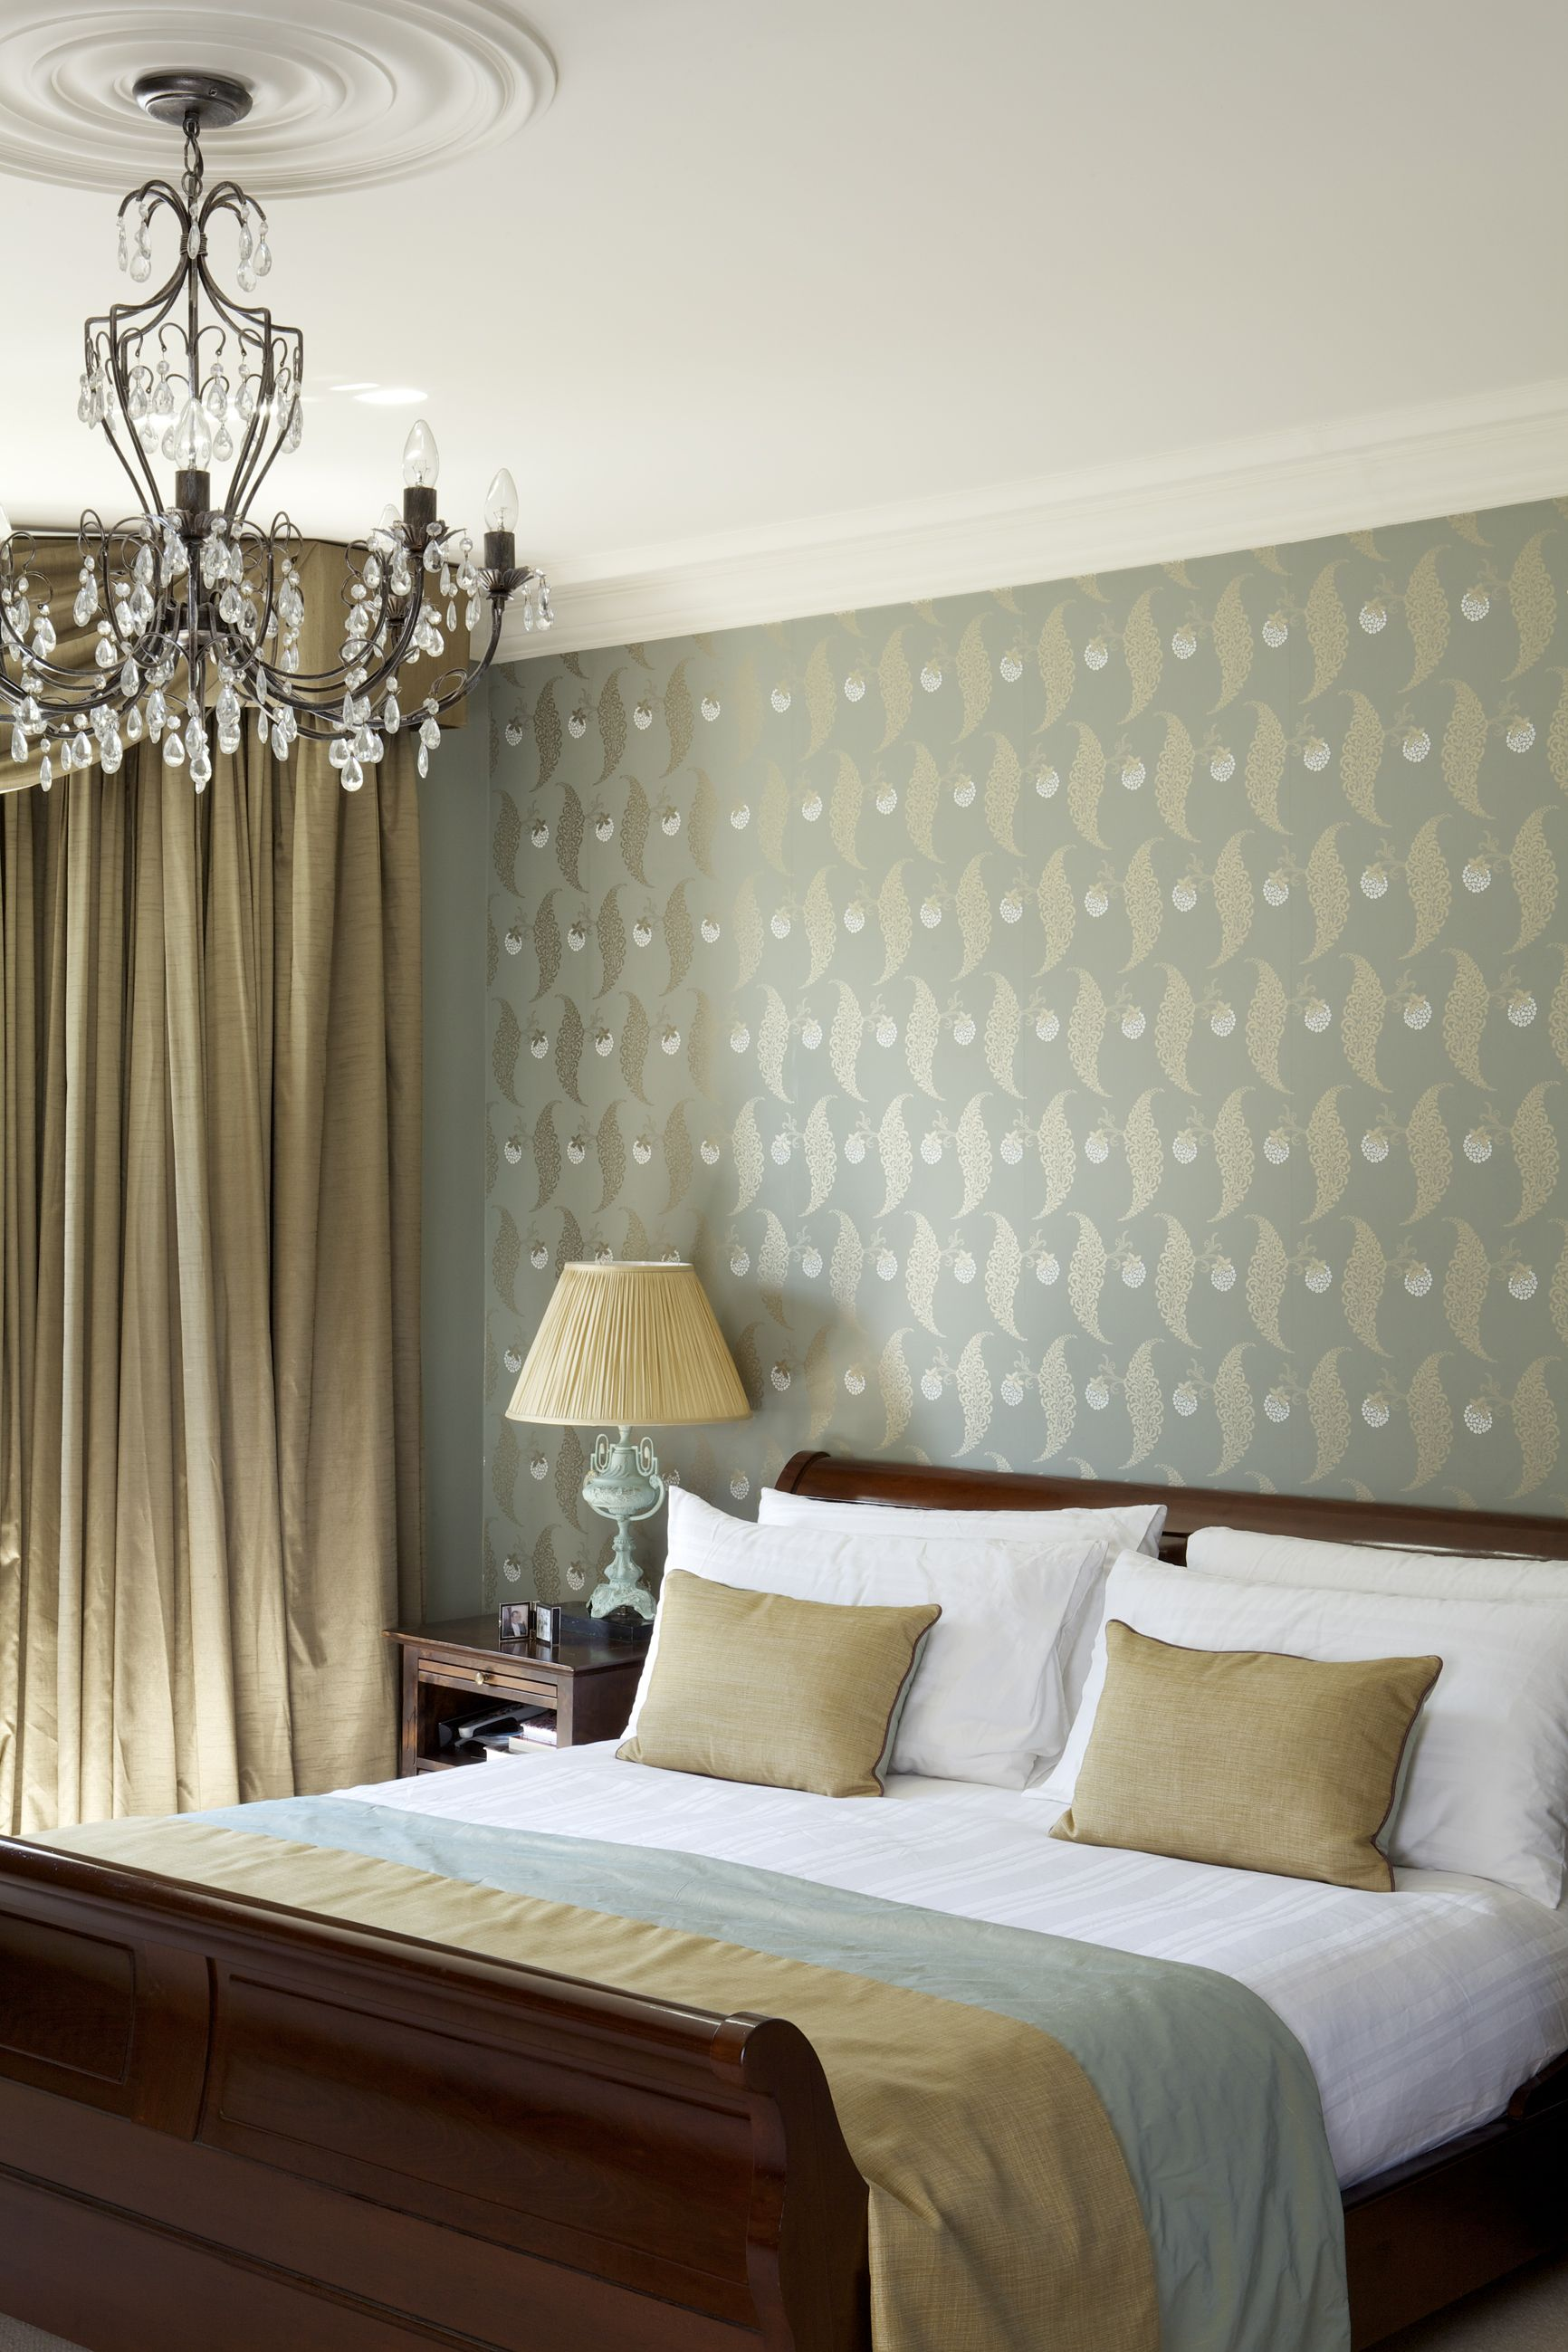 Wall in Farrow & Ball's Rosslyn BP 1938 wallpaper, Ceiling